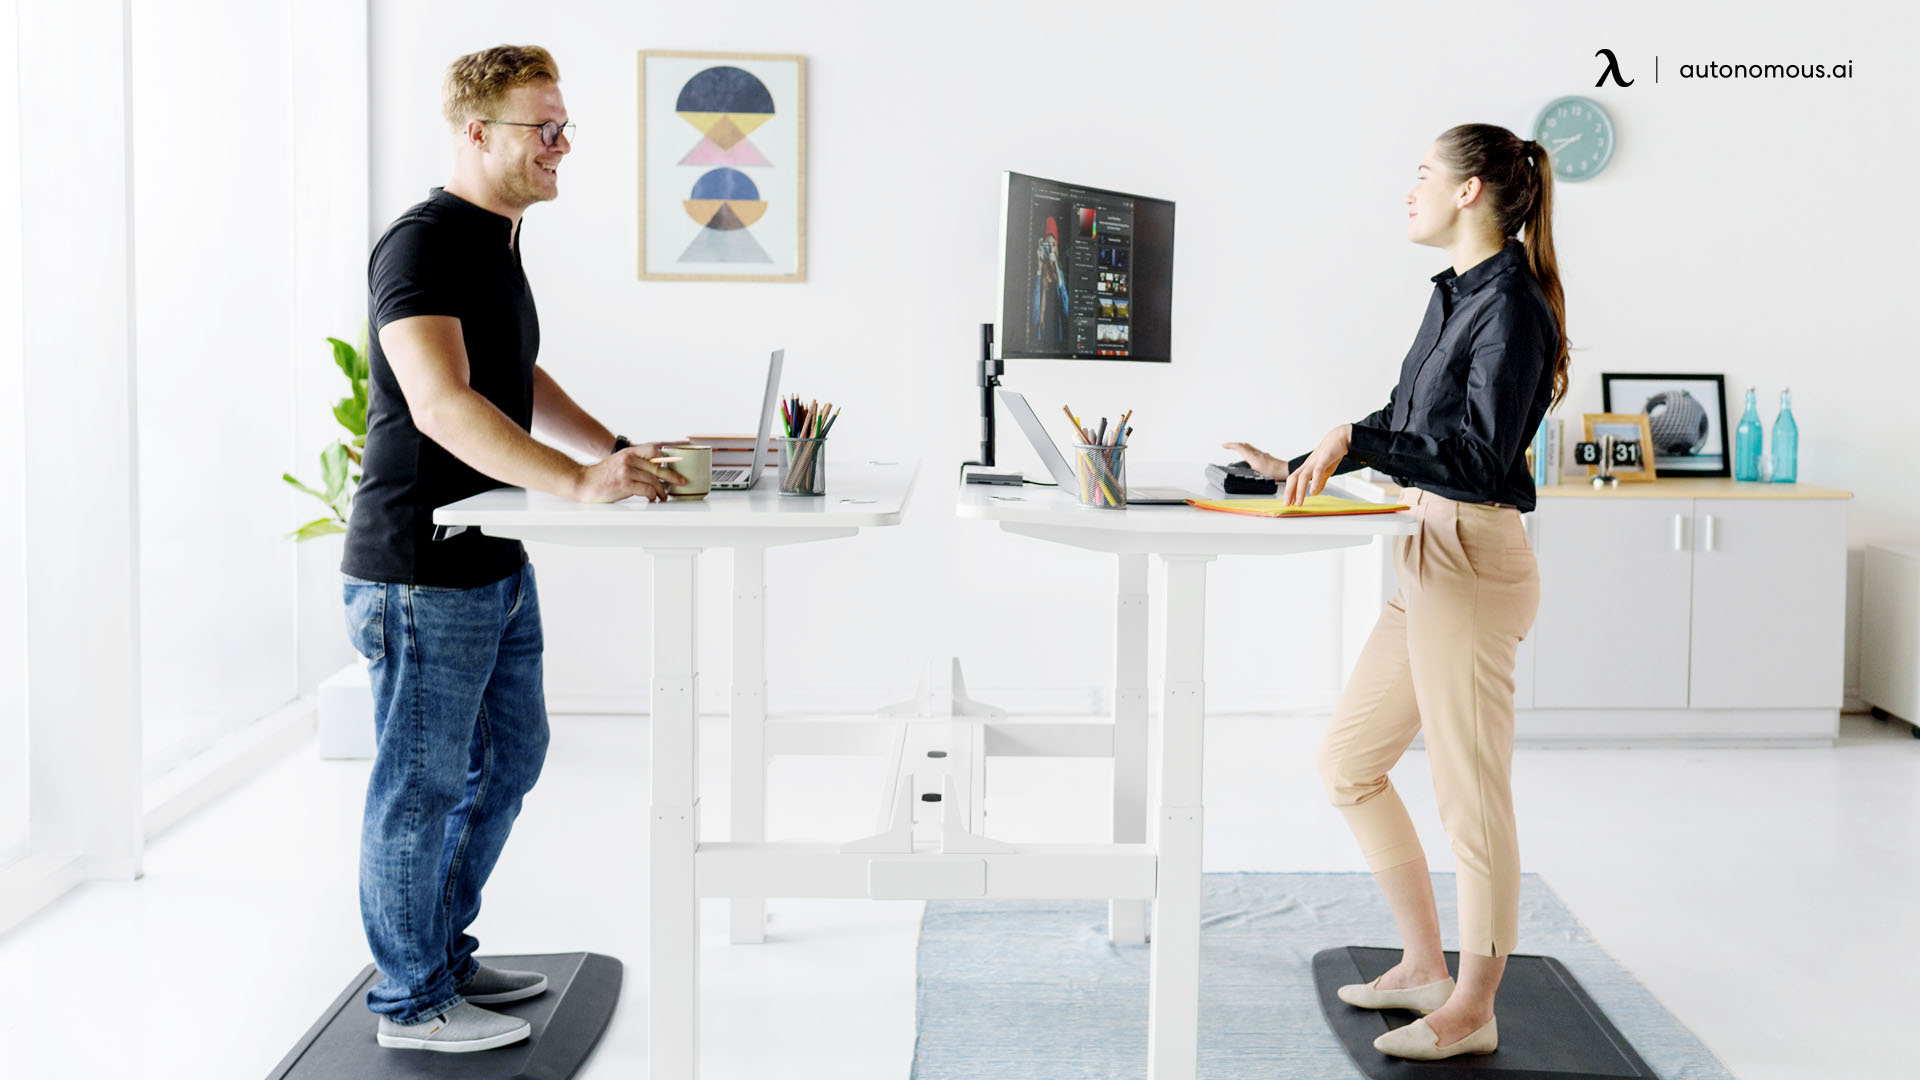 Benefits and Challenges of a shared home office